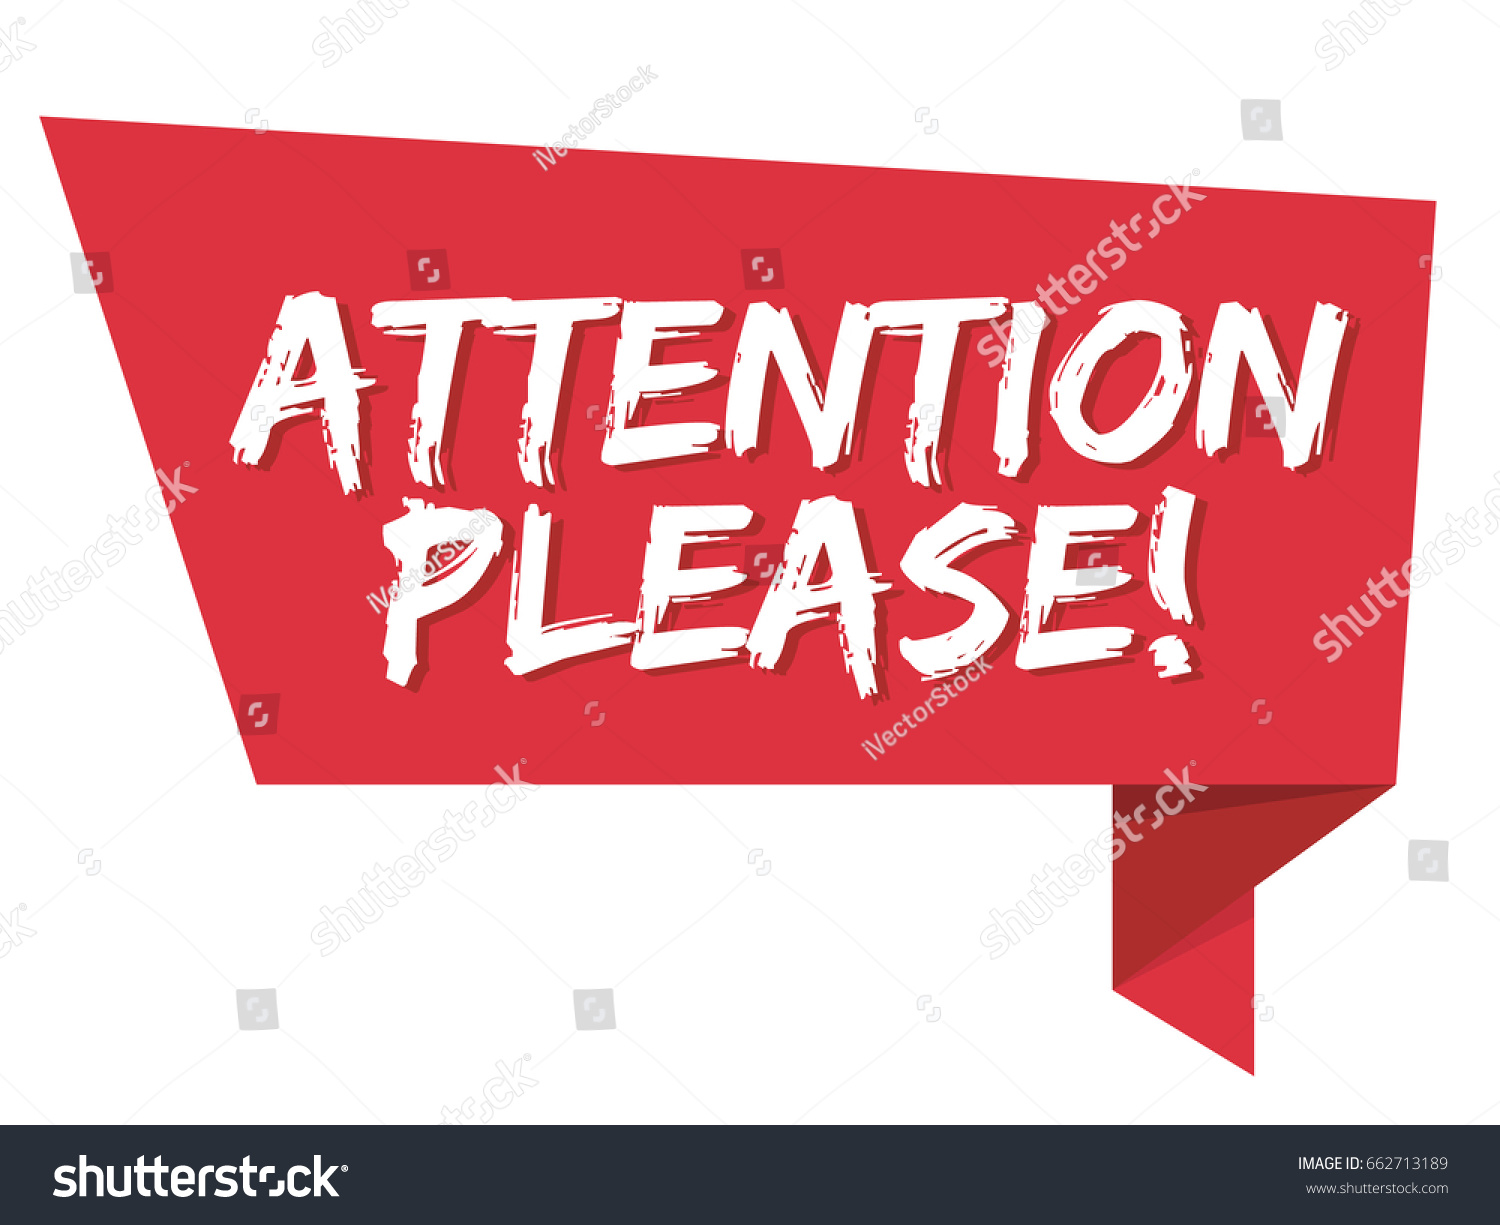 Attention Please Vector Stock Vector 662713189 Shutterstock